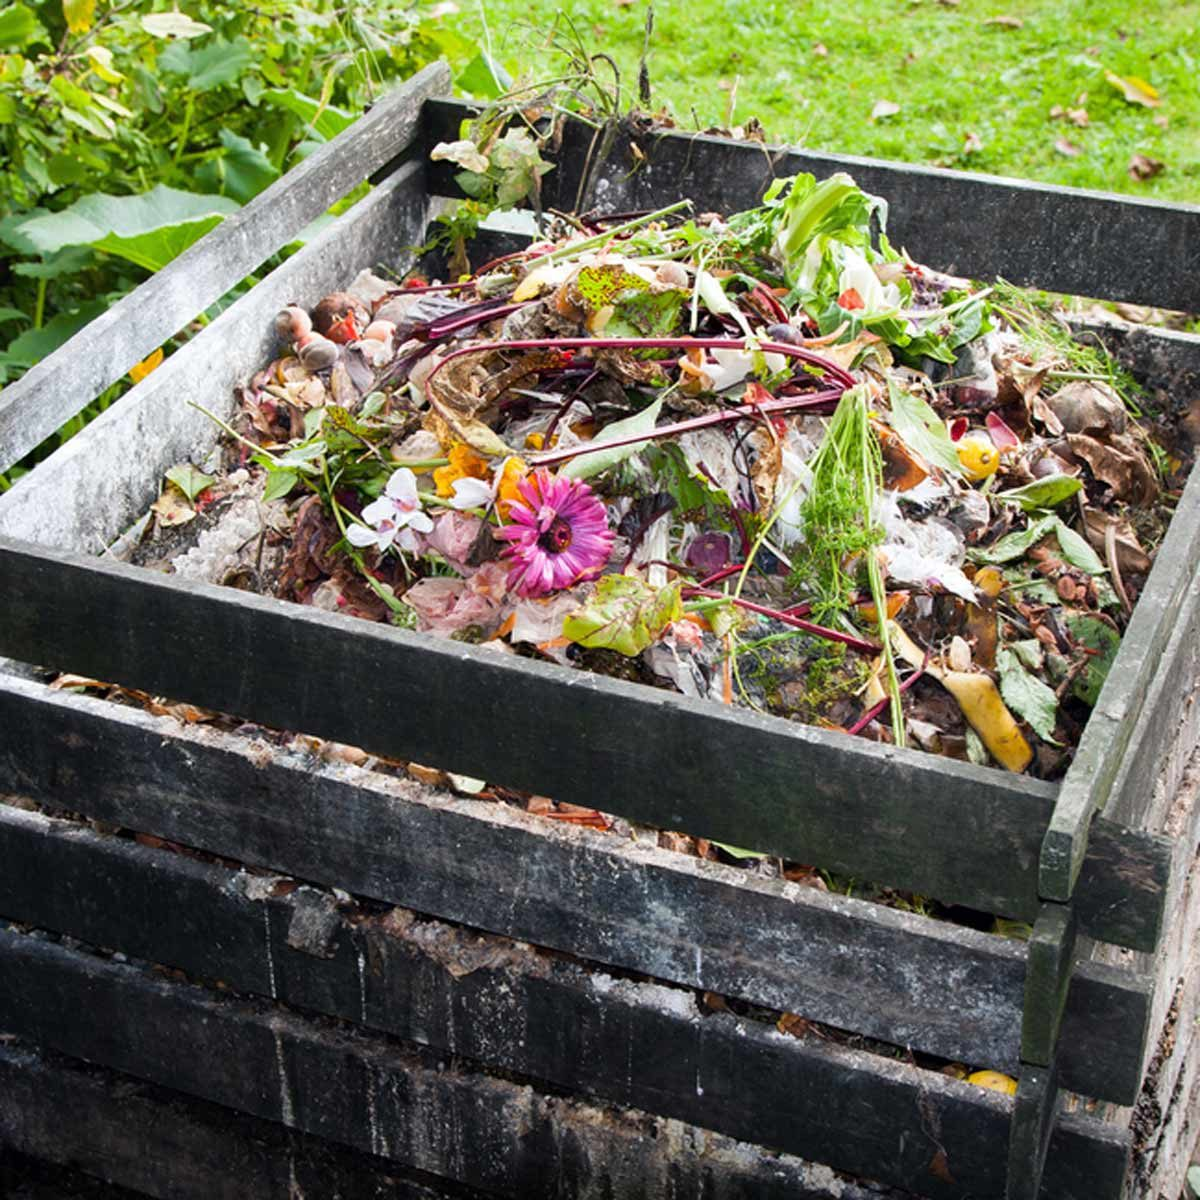 shutterstock_156179246 compost pile